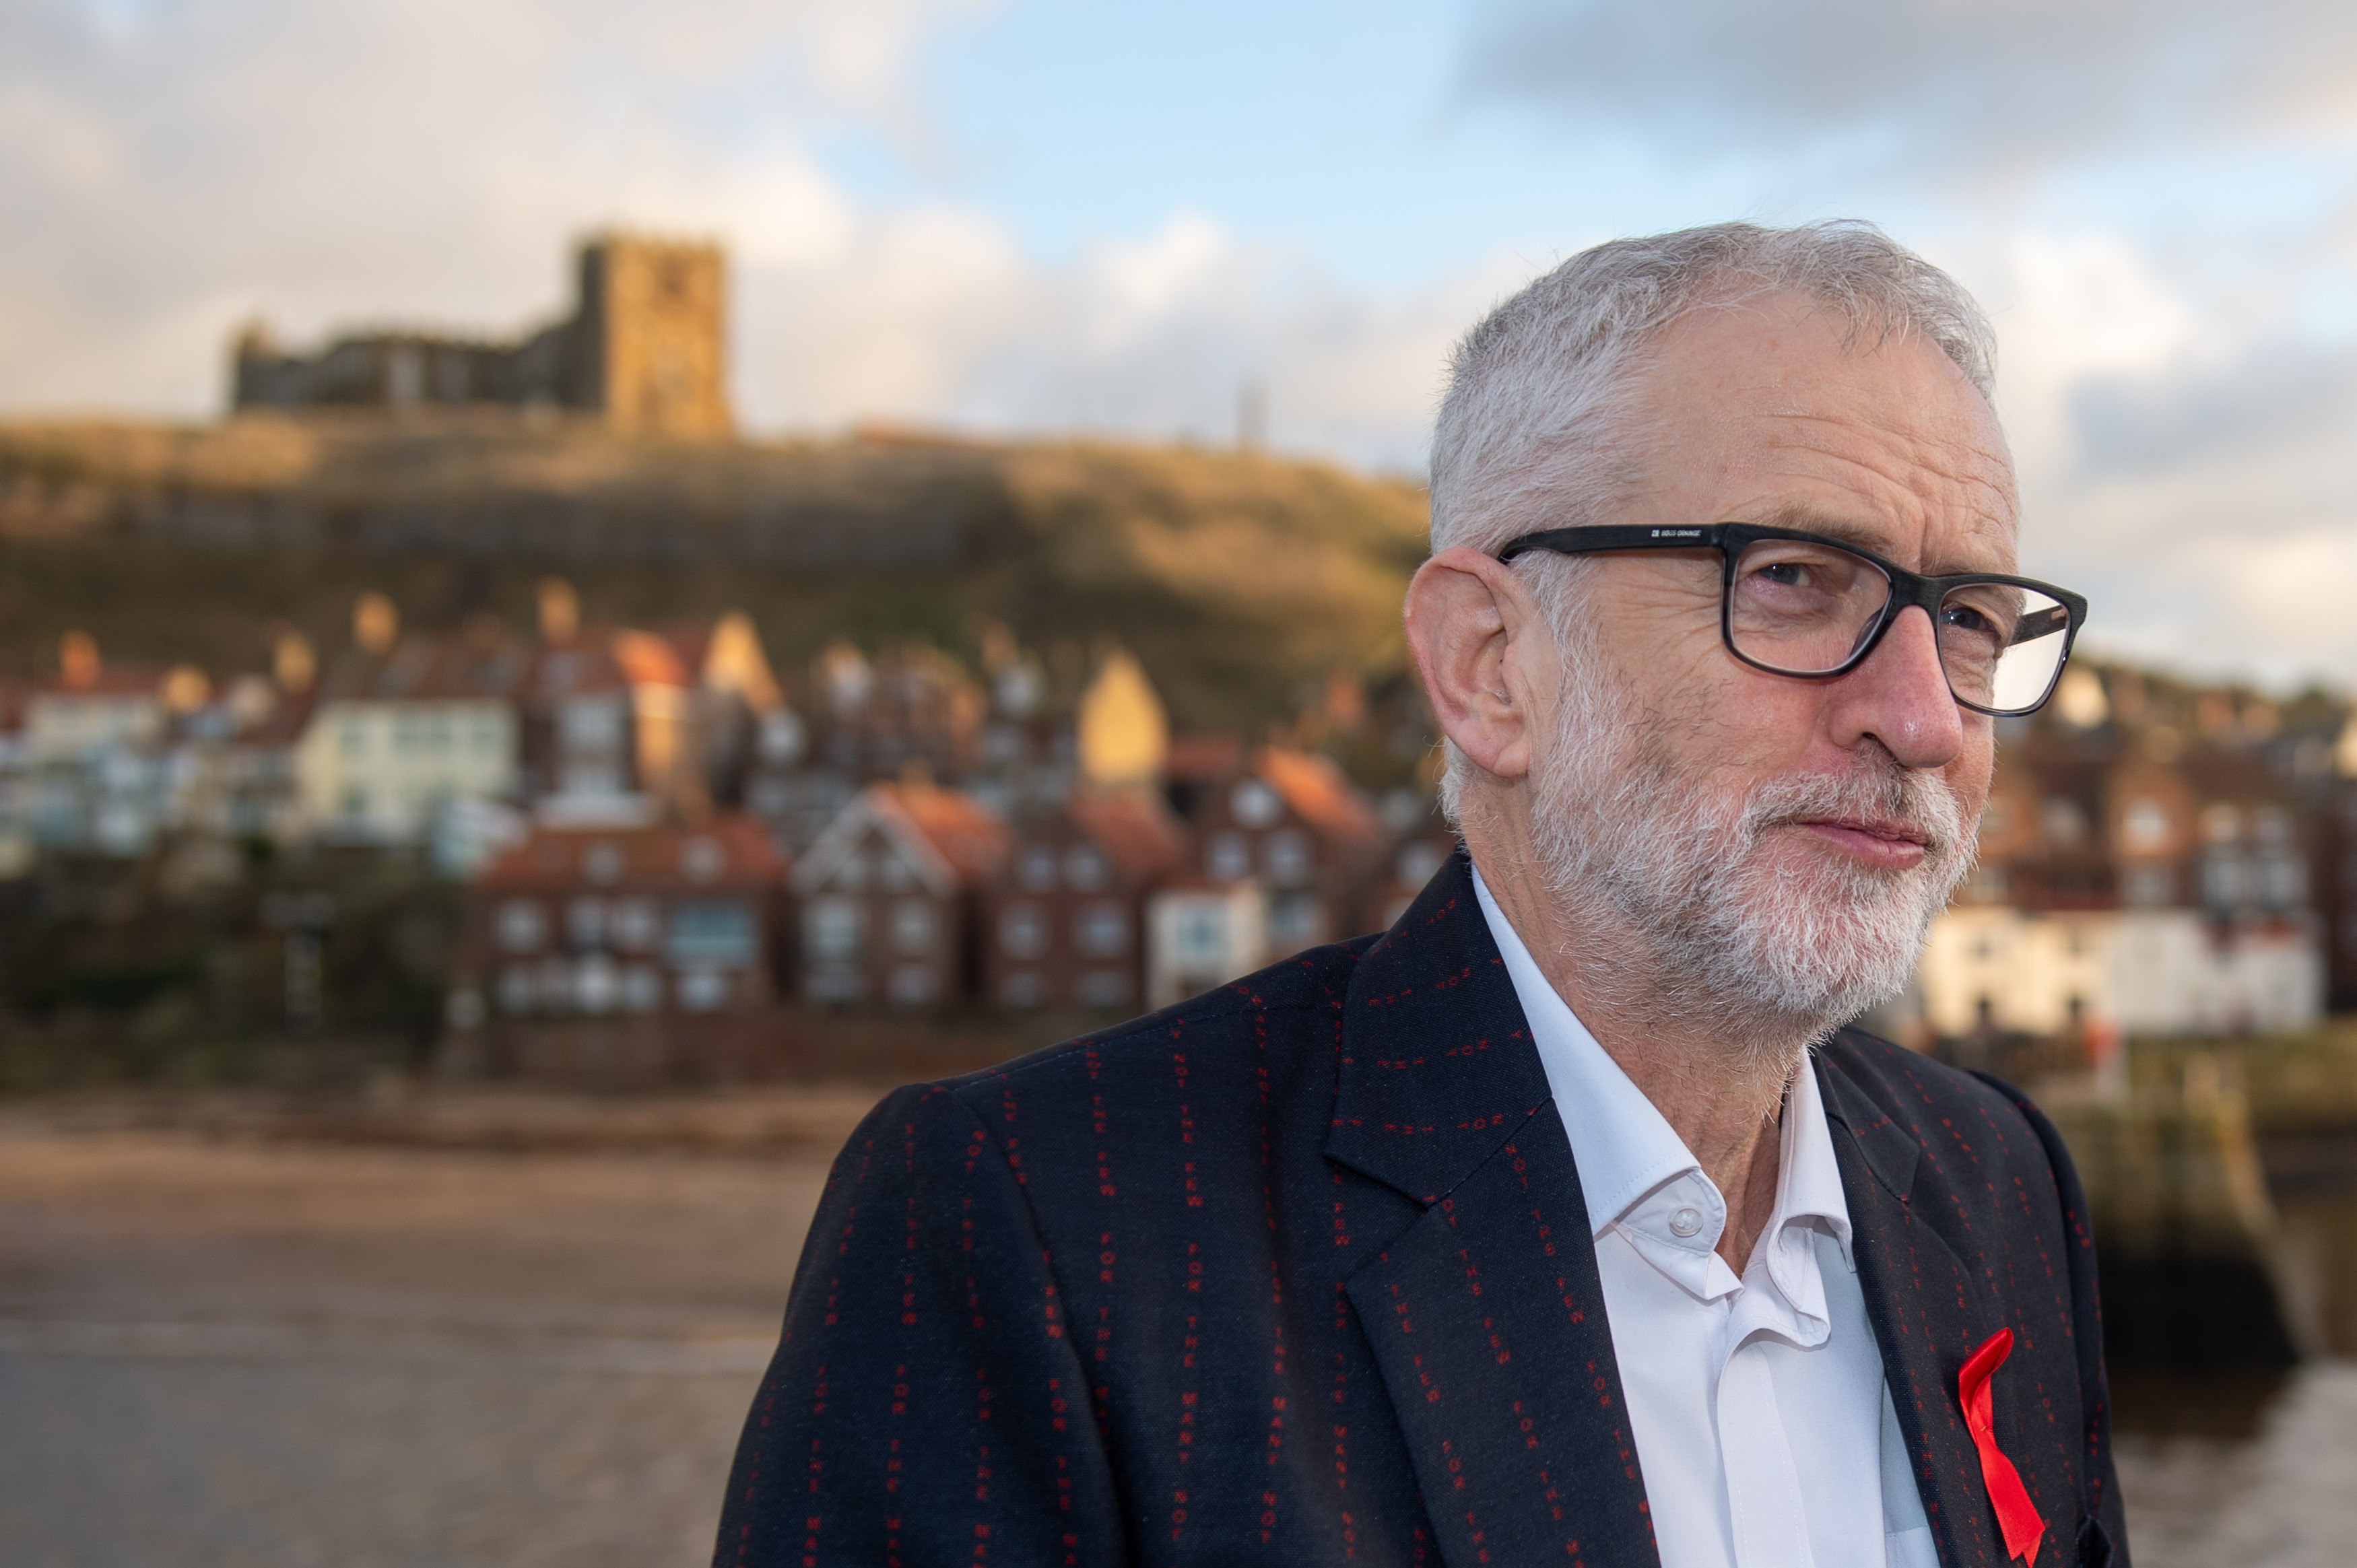 """Labour leader Jeremy Corbyn wearing a jacket that has """"for the many not the few"""" printed all over it, while on the General Election campaign trail in Whitby."""